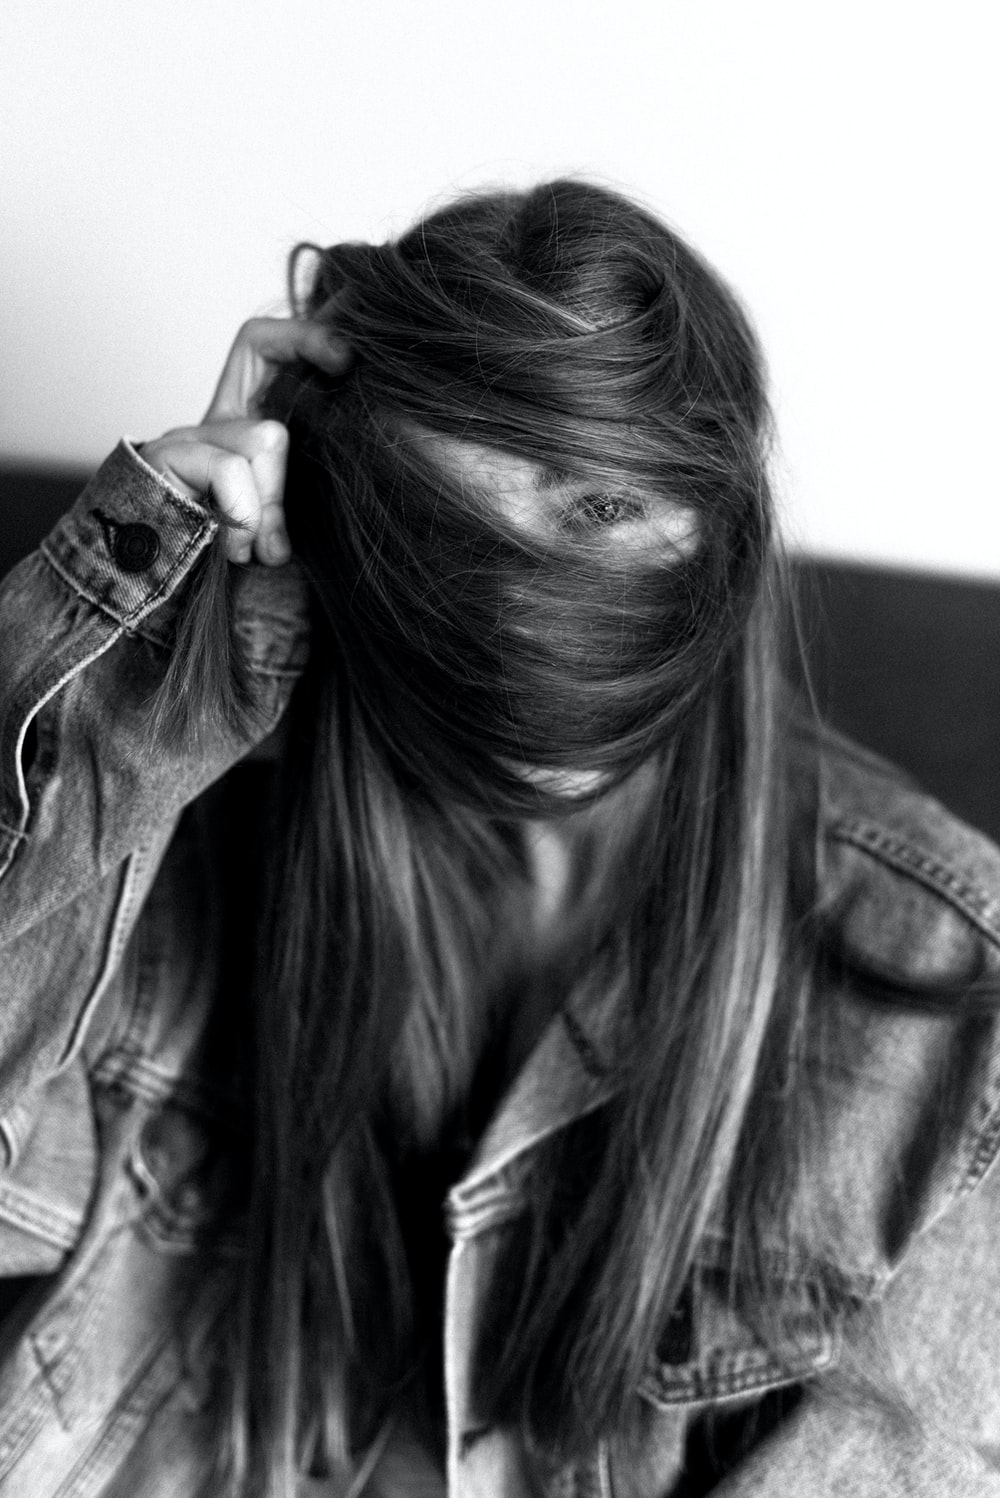 woman in denim jacket covering her face with her hair